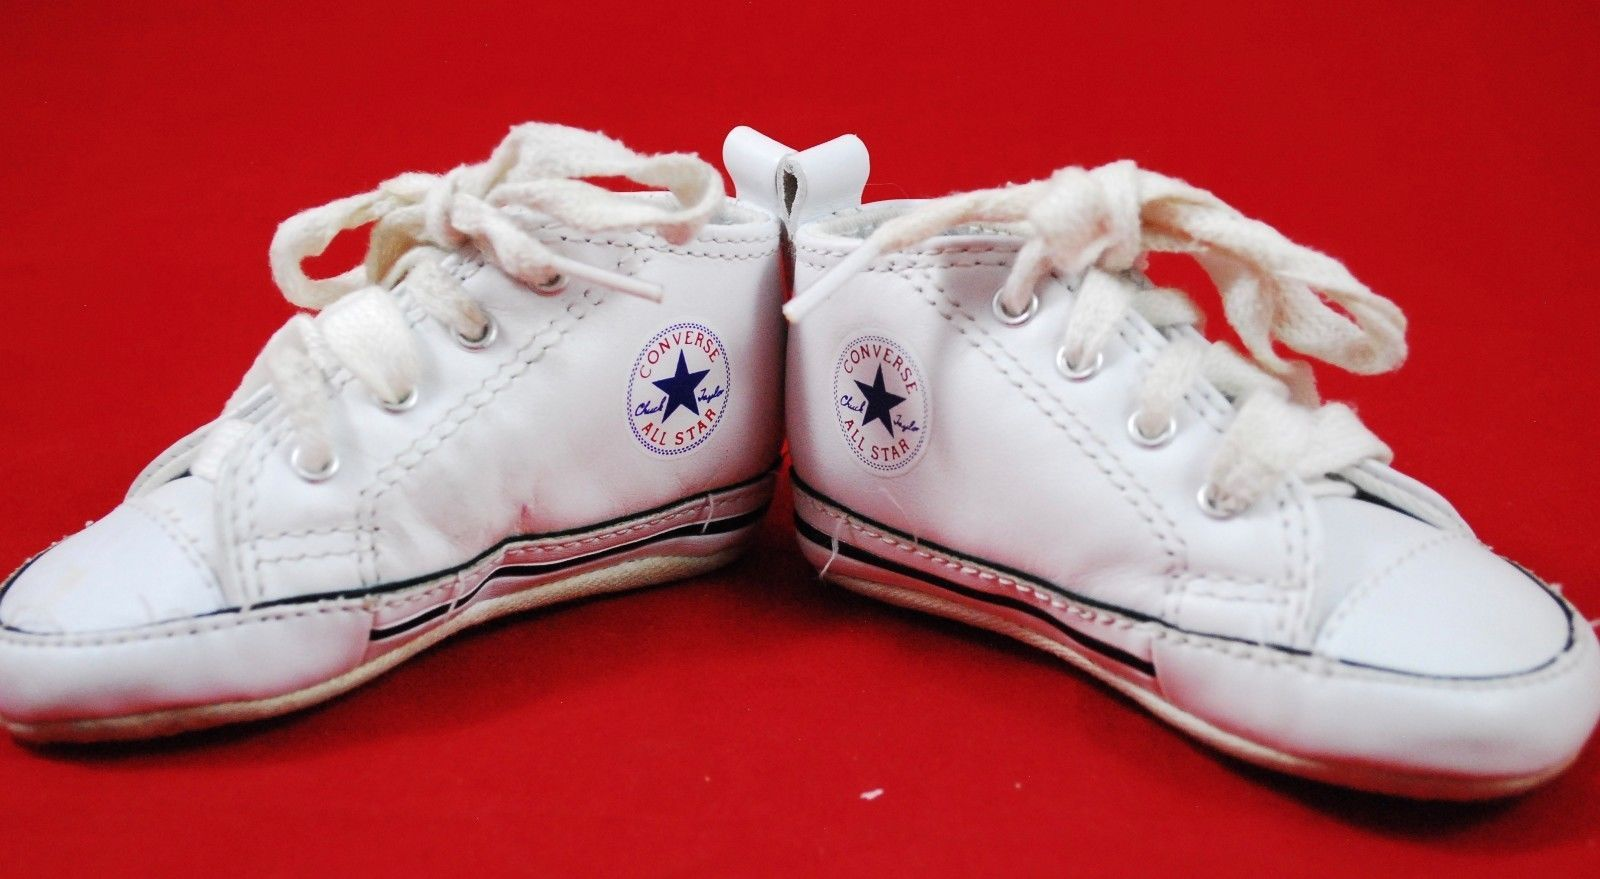 61e8f4607de Infant Baby CONVERSE Crib Shoes SIZE 3 White and 50 similar items. 57